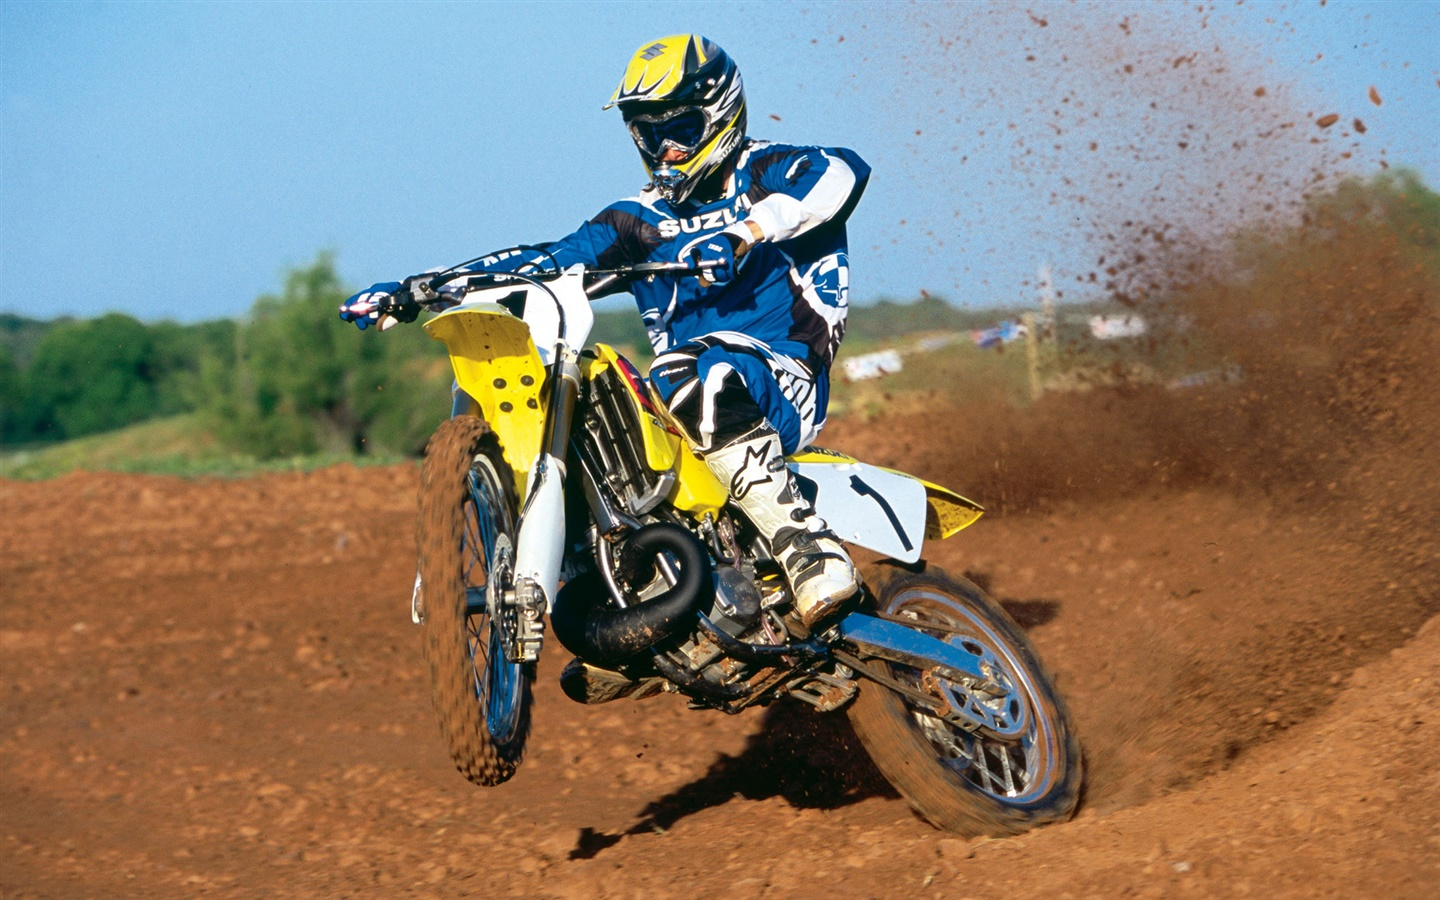 Suzuki motorcycle, racing, jumping 1440x900 wallpaper